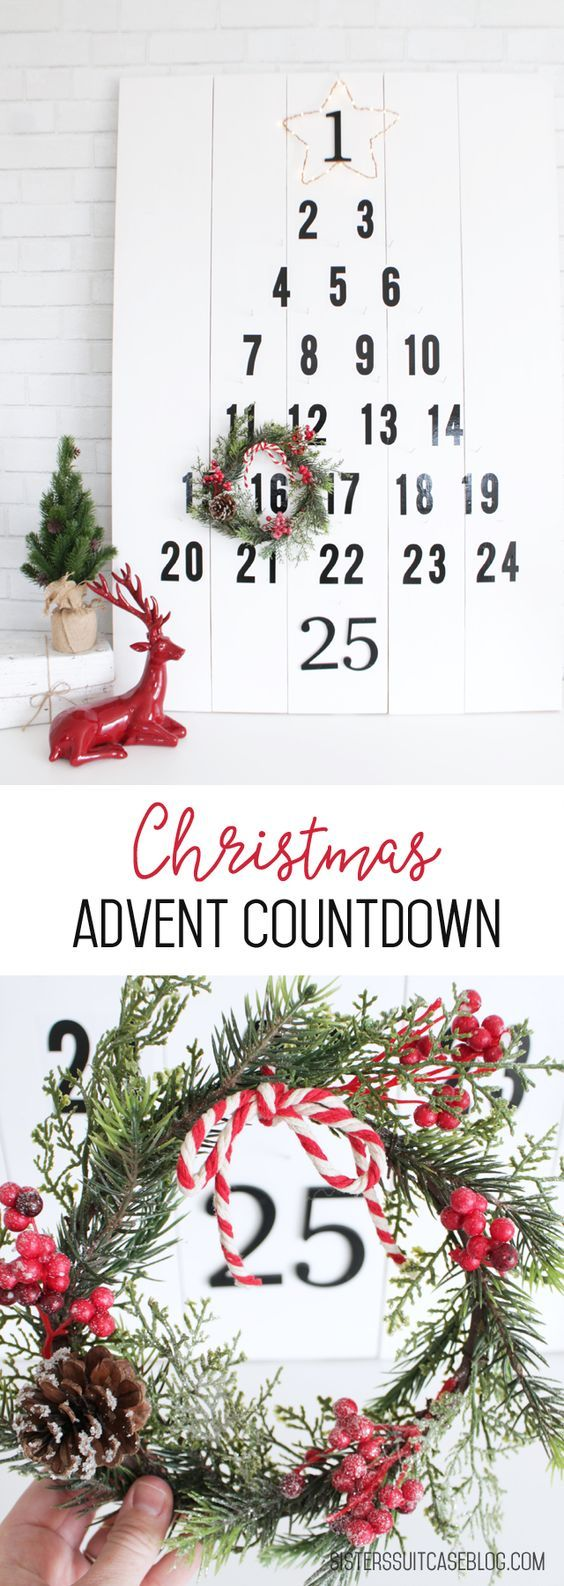 Christmas Tree Advent Countdown tutorial via sisterssuitcaseblog.com, or register to make your own at @HomeDepot's #DIHWorkshop #sponsored